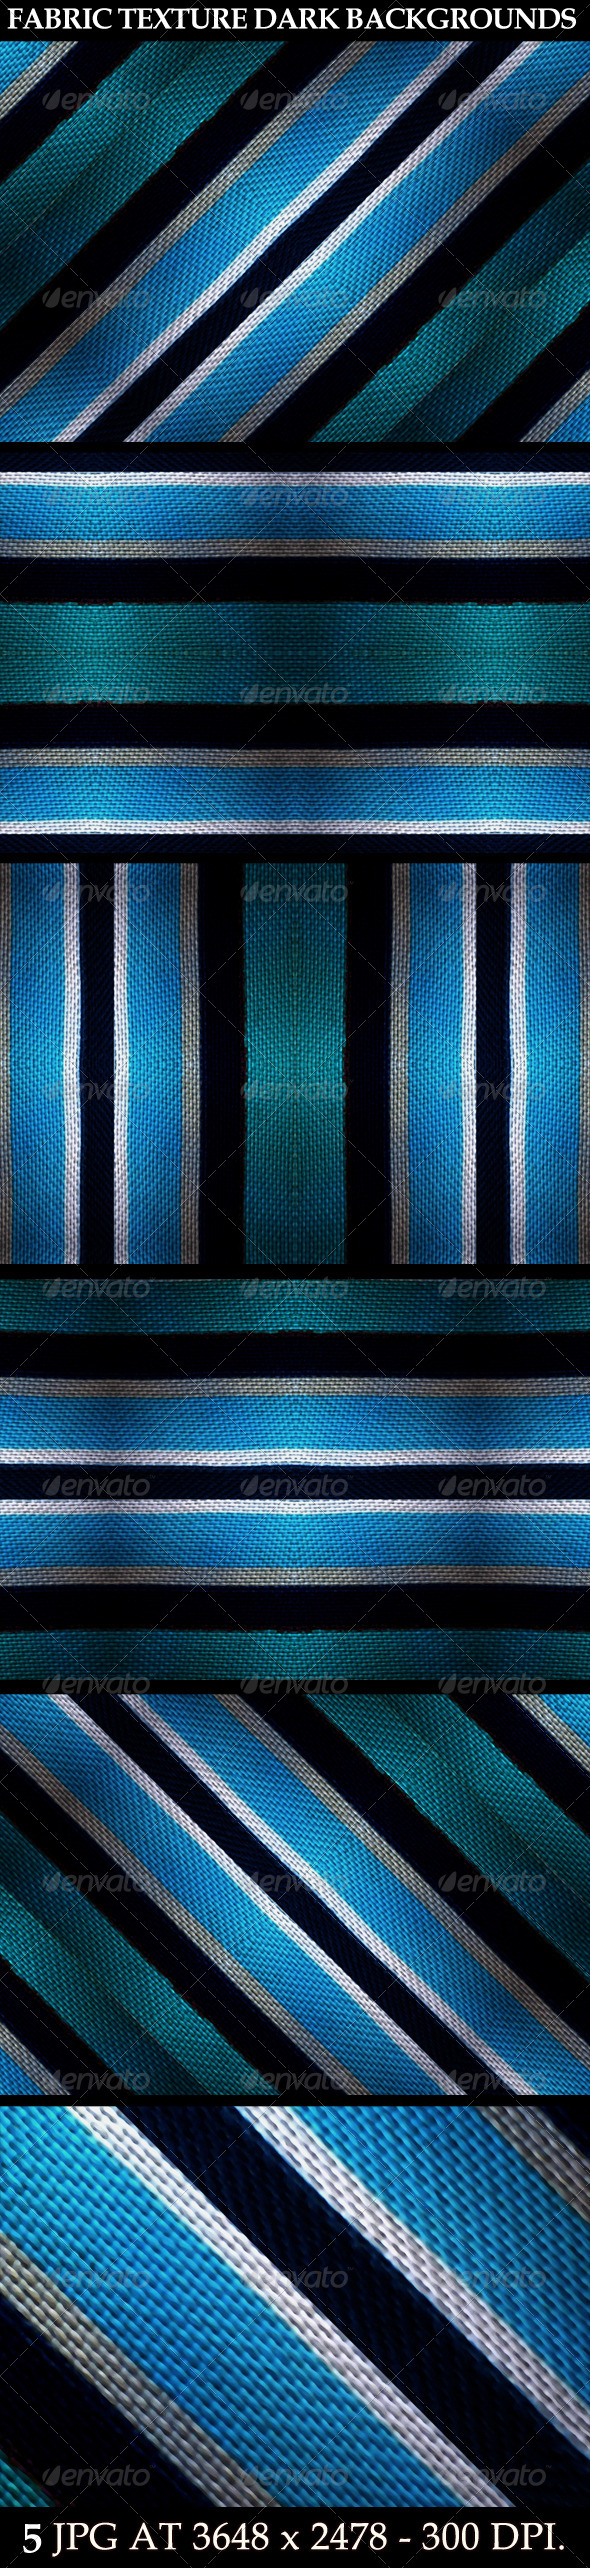 GraphicRiver 5 Fabric Texture Dark Backgrounds 7103899